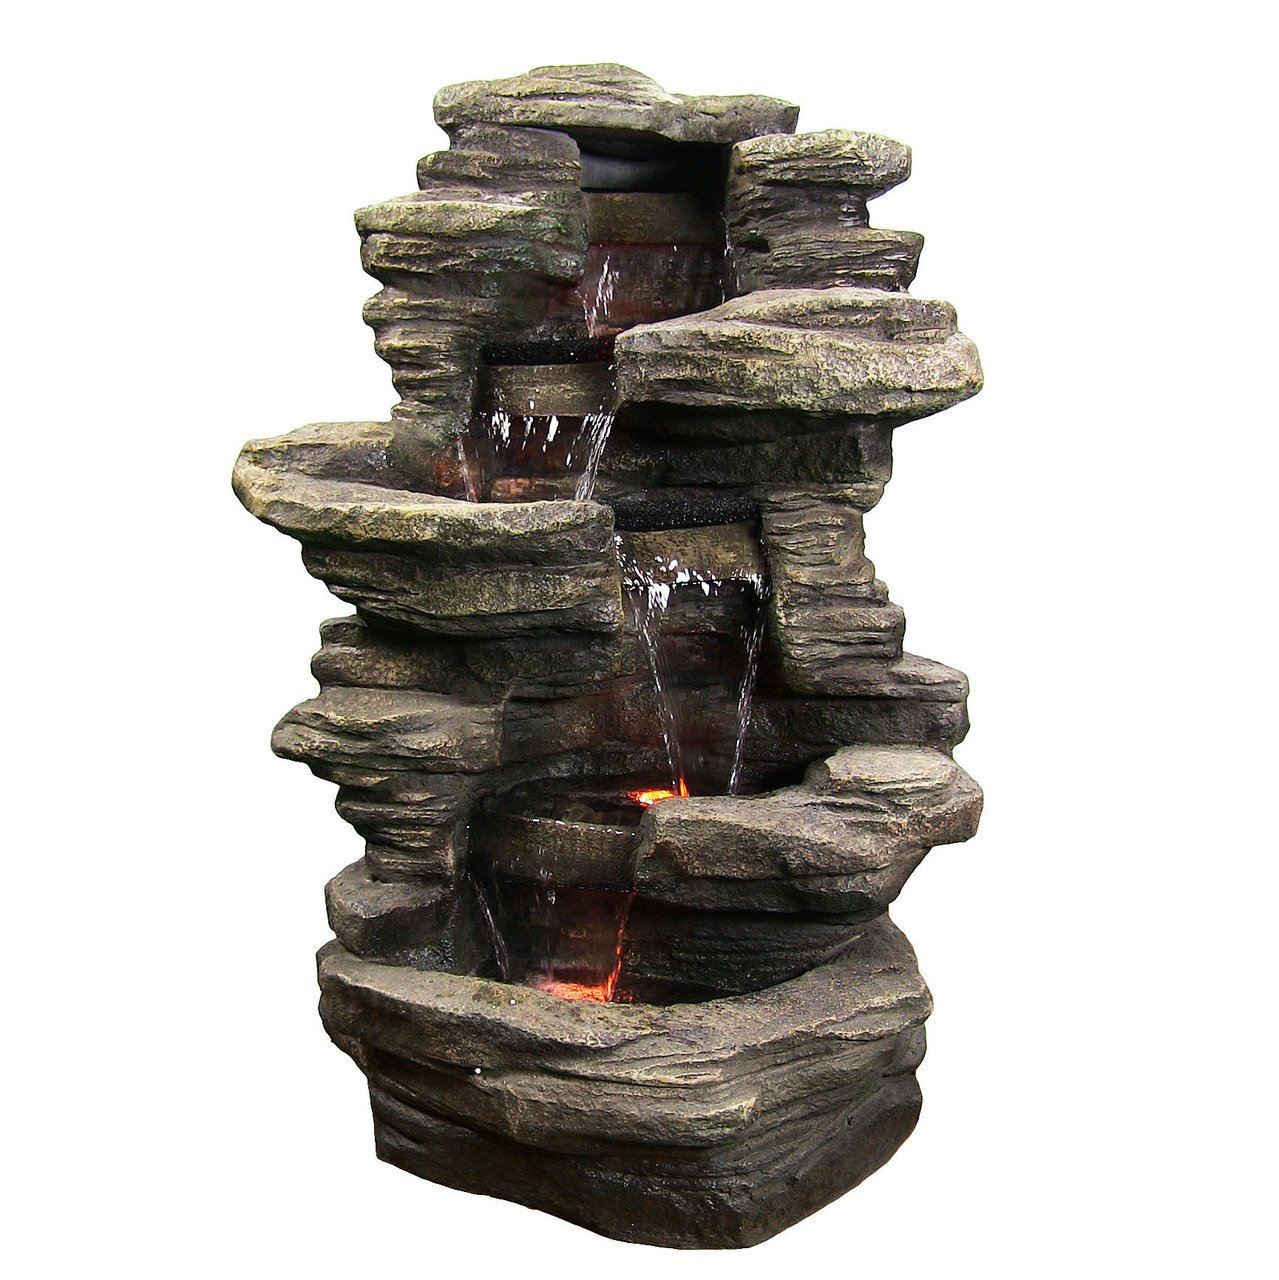 Amazon Com Sunnydaze Stacked Shale Electric Outdoor Waterfall Fountain With Led Lights 38 Inch Tall Garden Outdoor